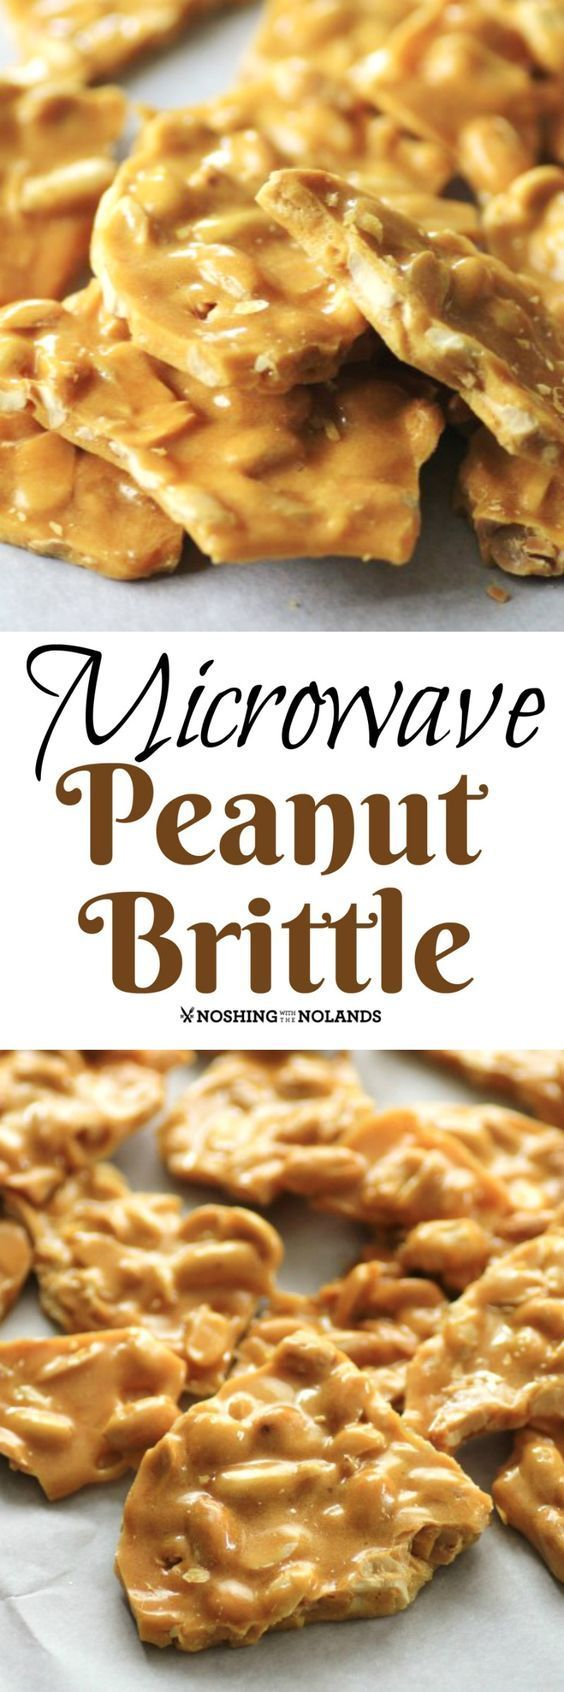 1000+ images about Recipes - Dessert on Pinterest ...